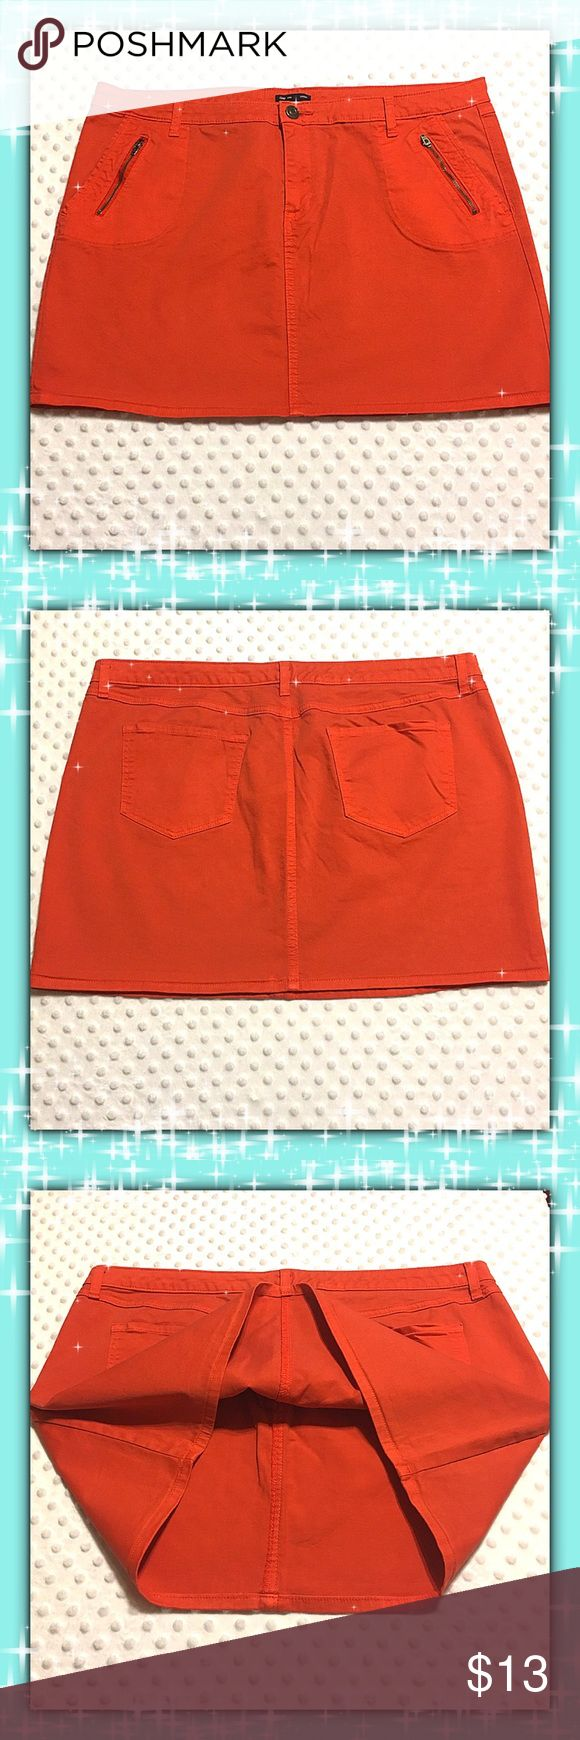 Gap Skirt NWOT Excellent Condition GAP Skirts Mini